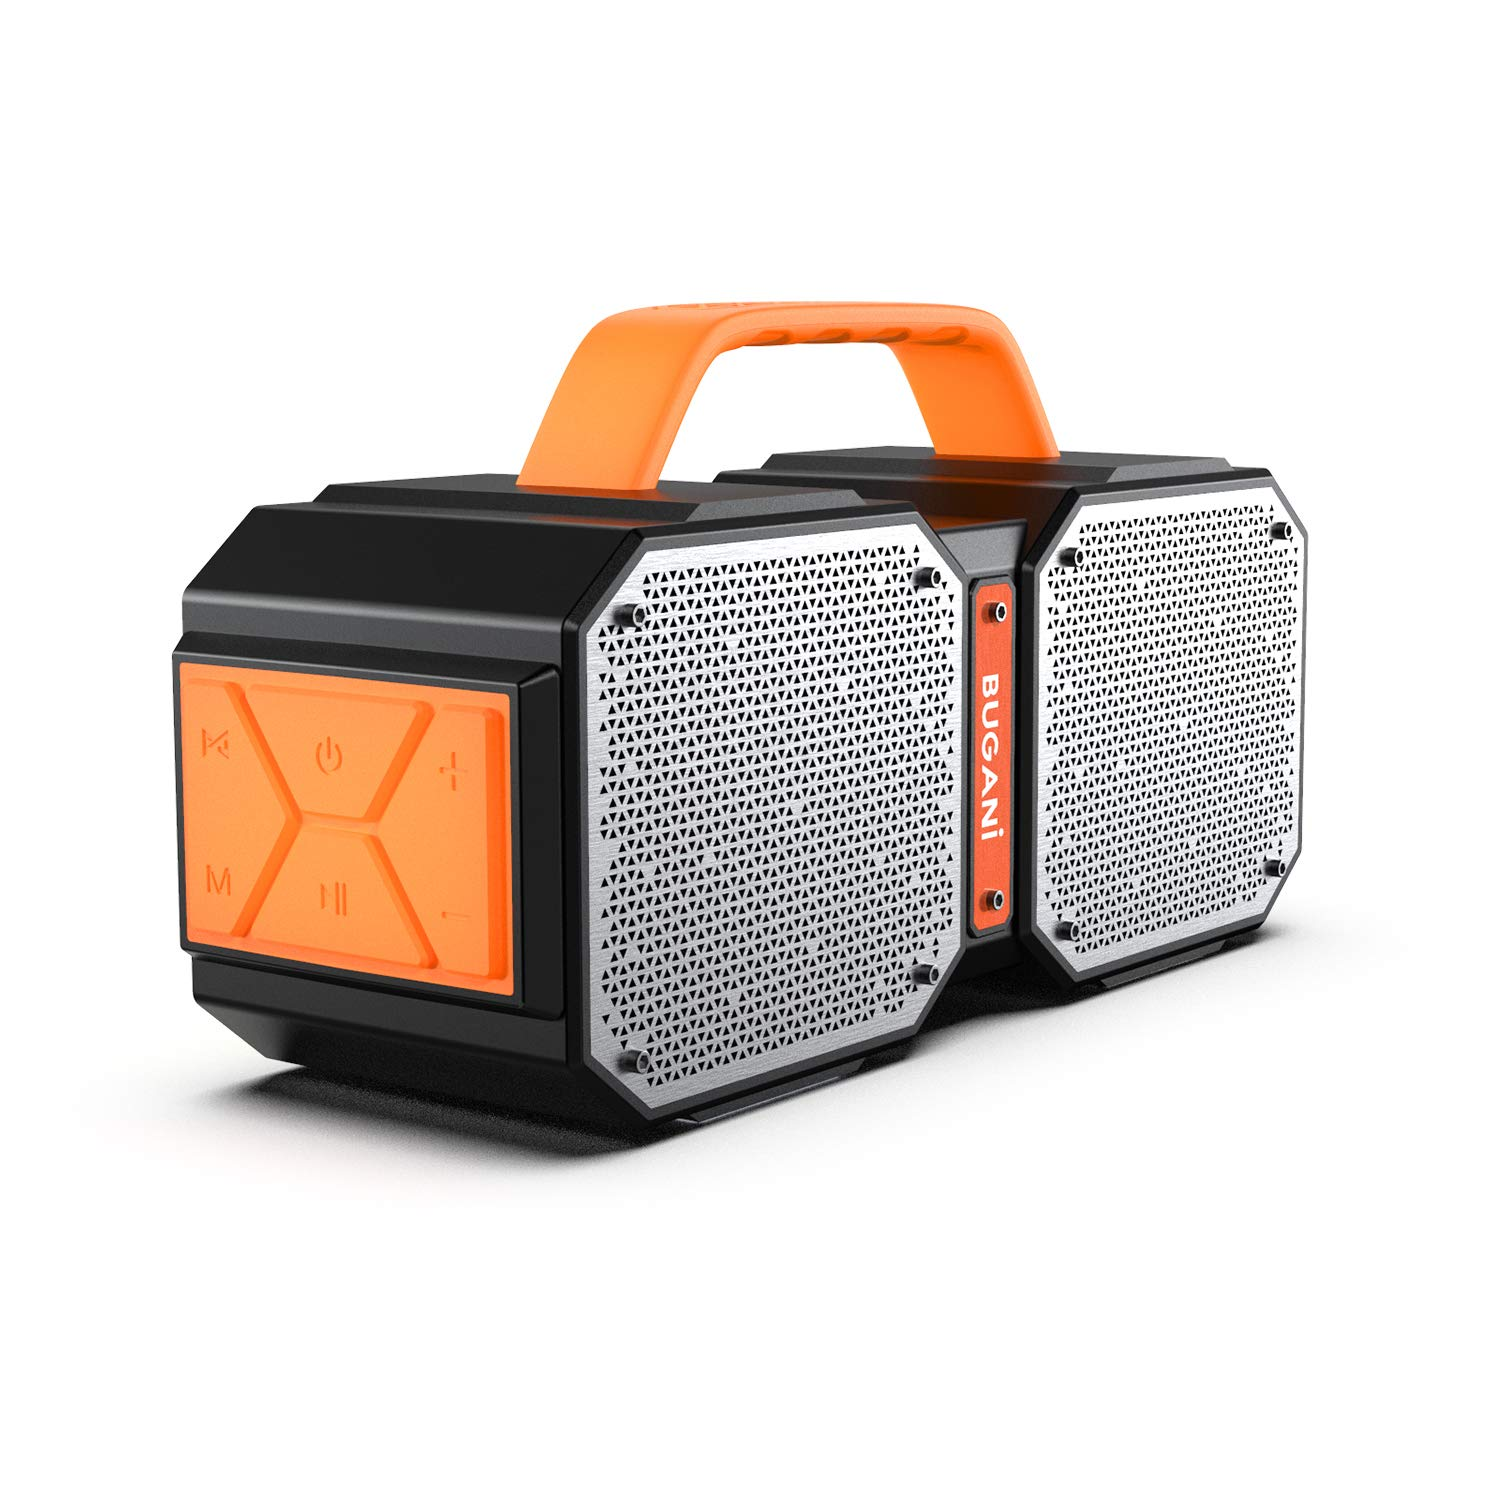 Bluetooth Speakers, Bugani M83 Waterproof Outdoor Speakers Bluetooth 5.0, 40W Wireless Stereo Pairing Booming Bass Speaker, 2400 Minutes Playtime with Charge Your Phone, for Home Party, Camping, Gym.